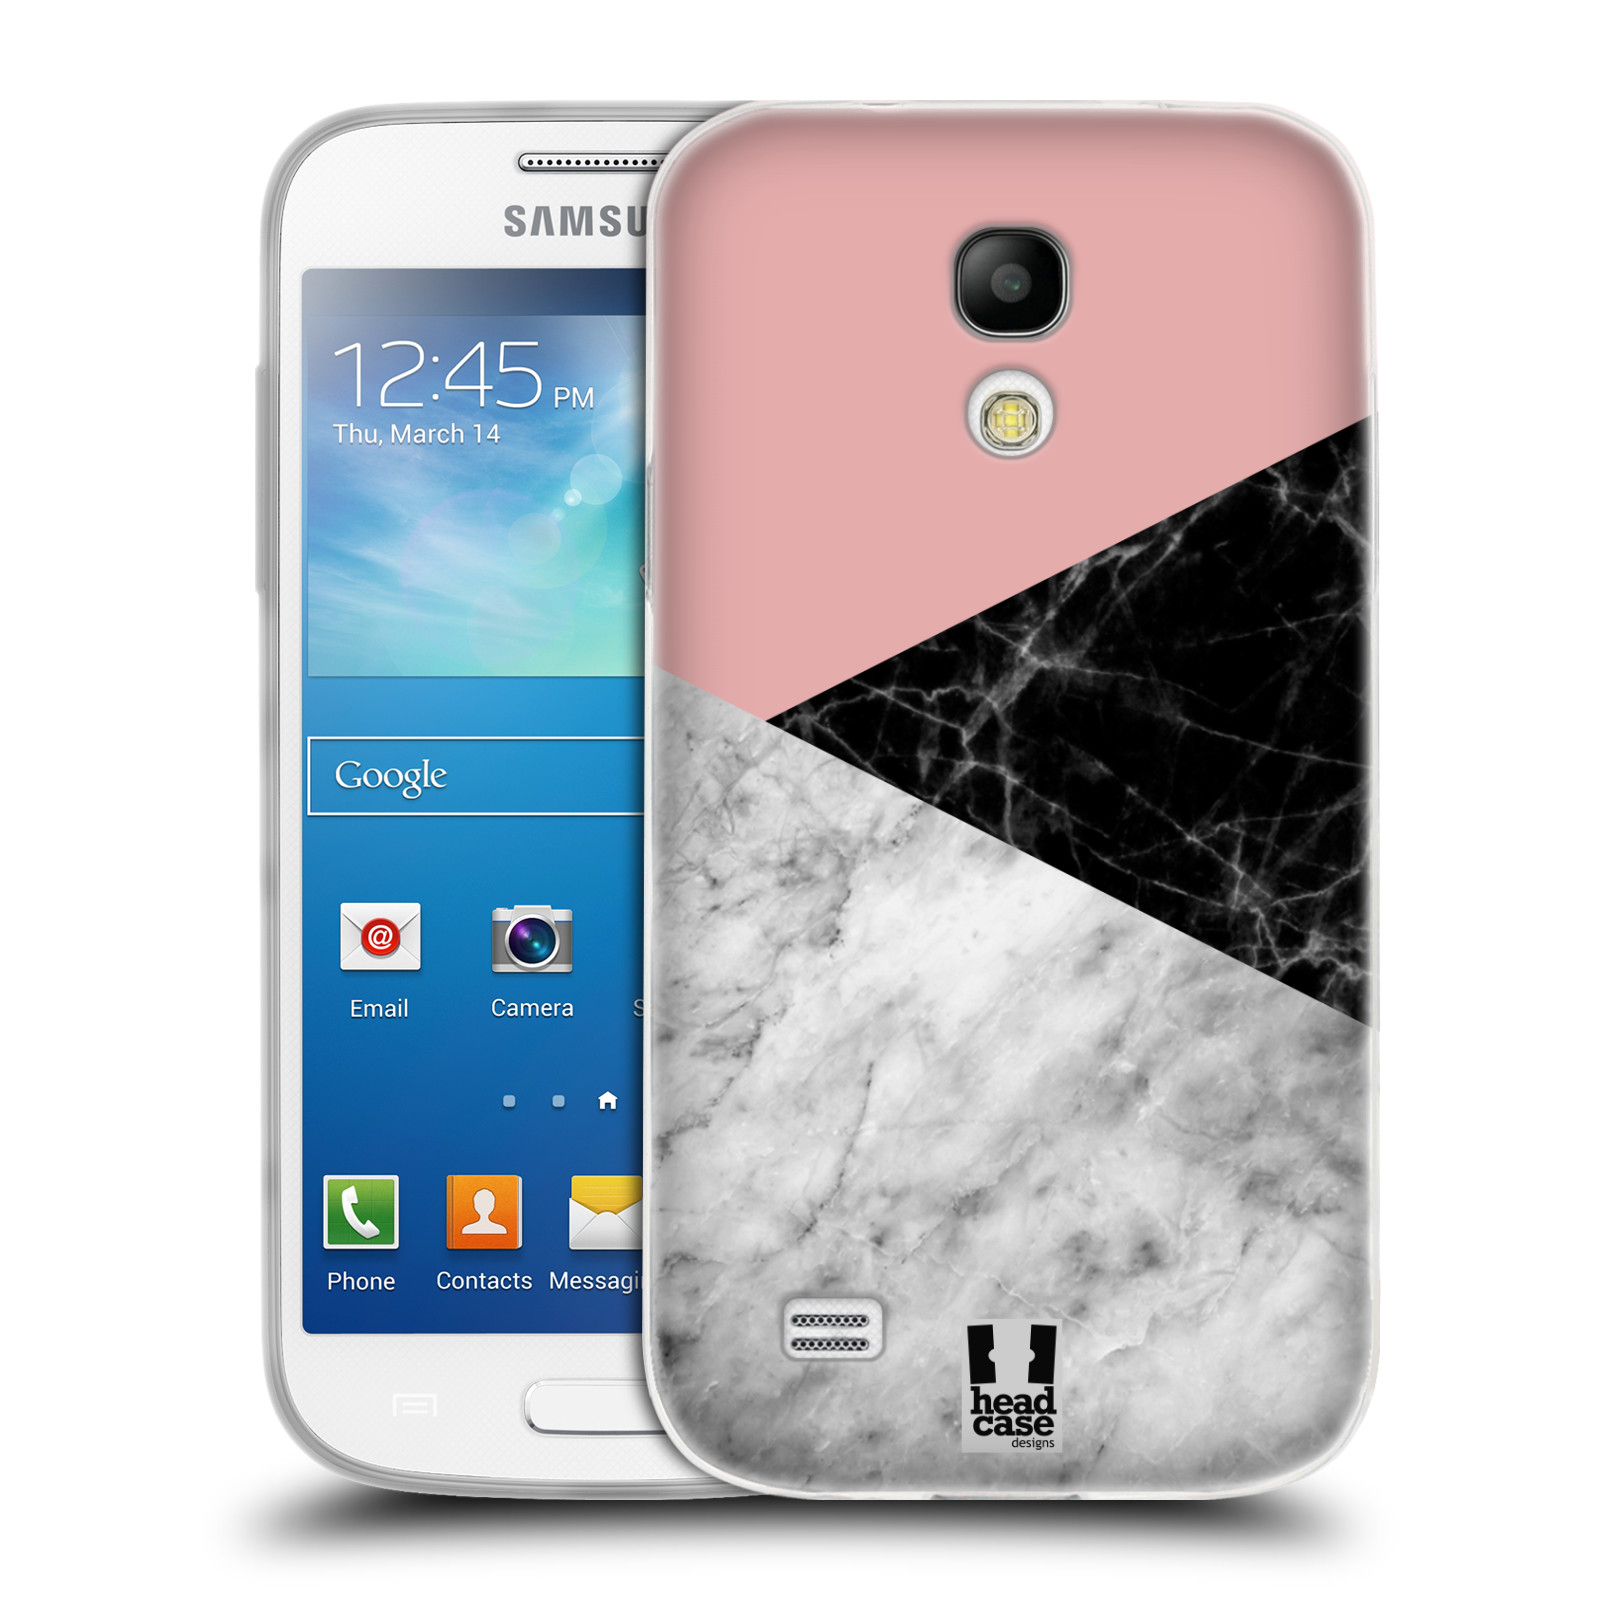 Silikonové pouzdro na mobil Samsung Galaxy S4 Mini VE - Head Case - Mramor mix